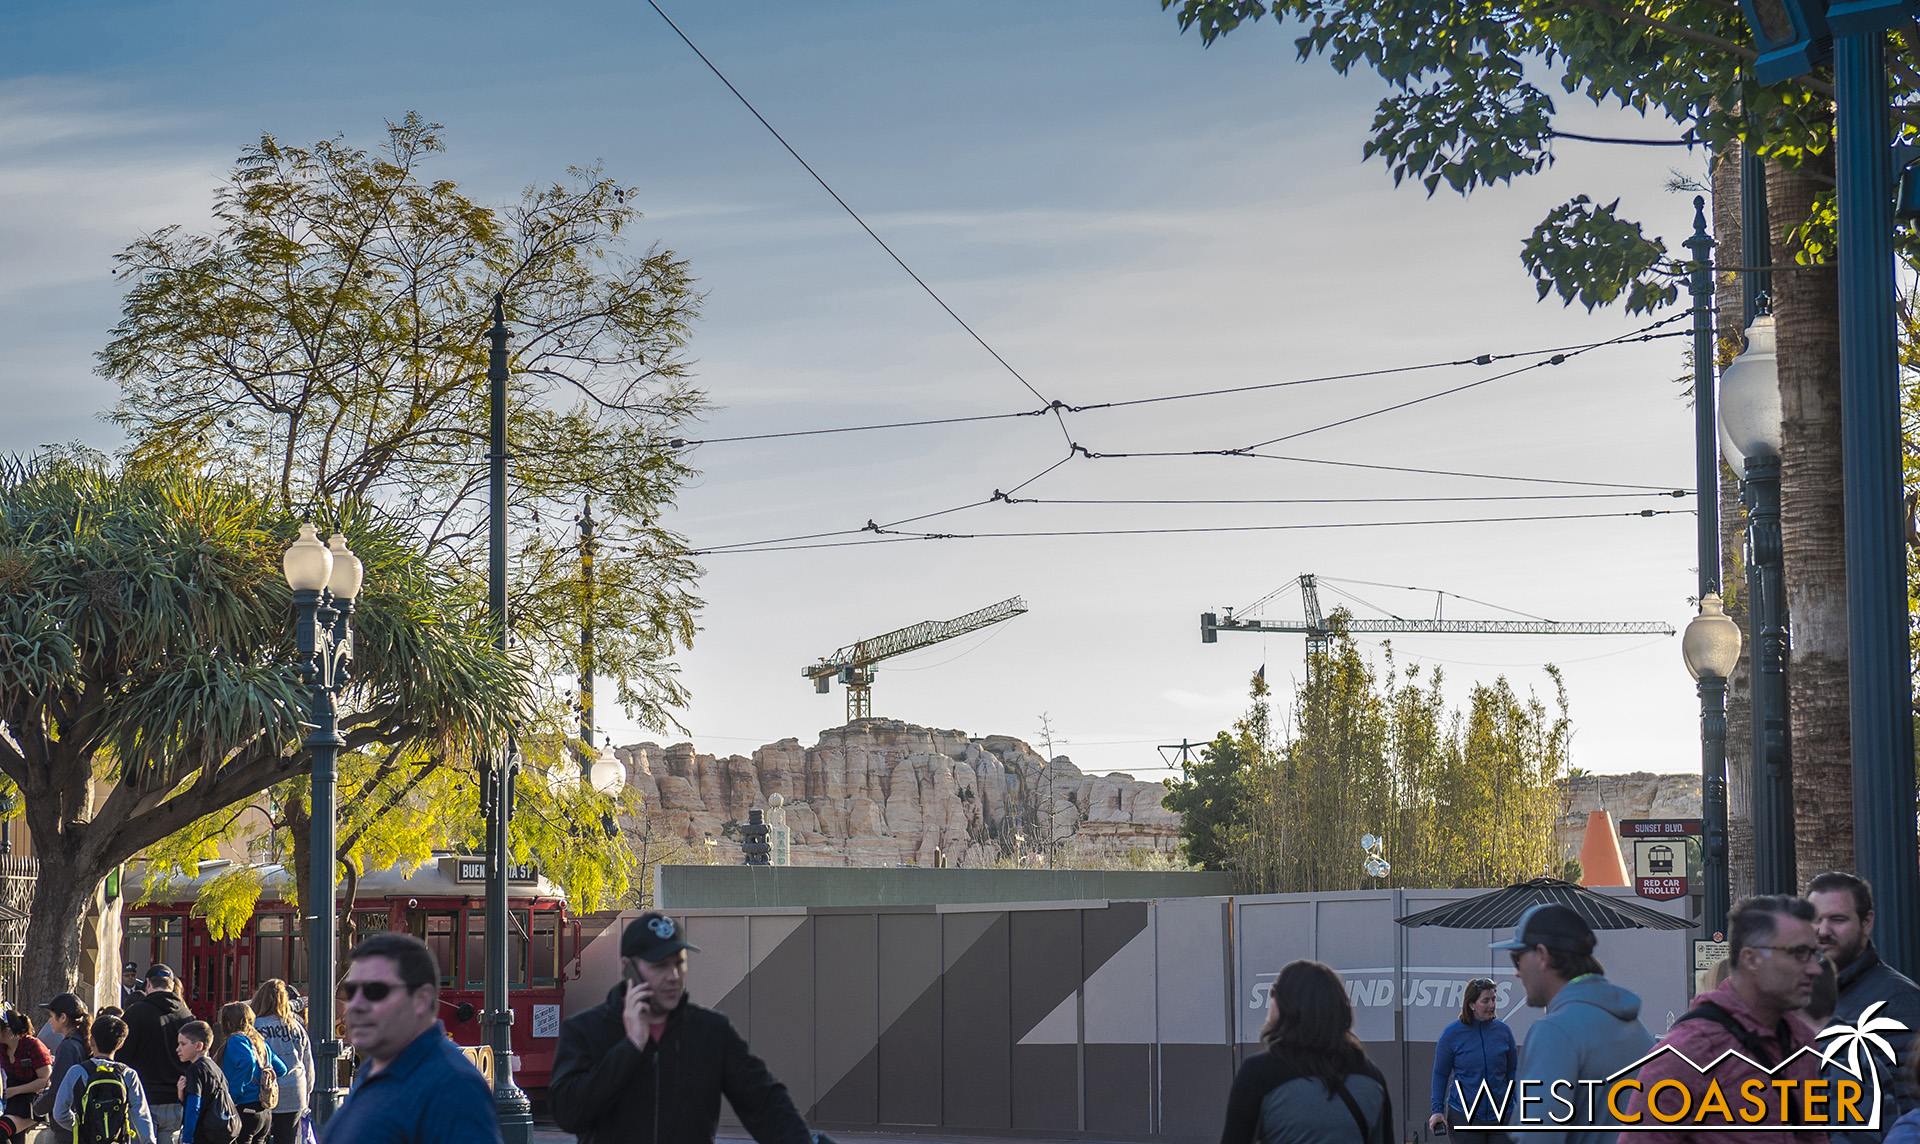 So I had every intention to get new angles of Marvel Land by going up the Pixar Pal-A-Round to photograph aerially.